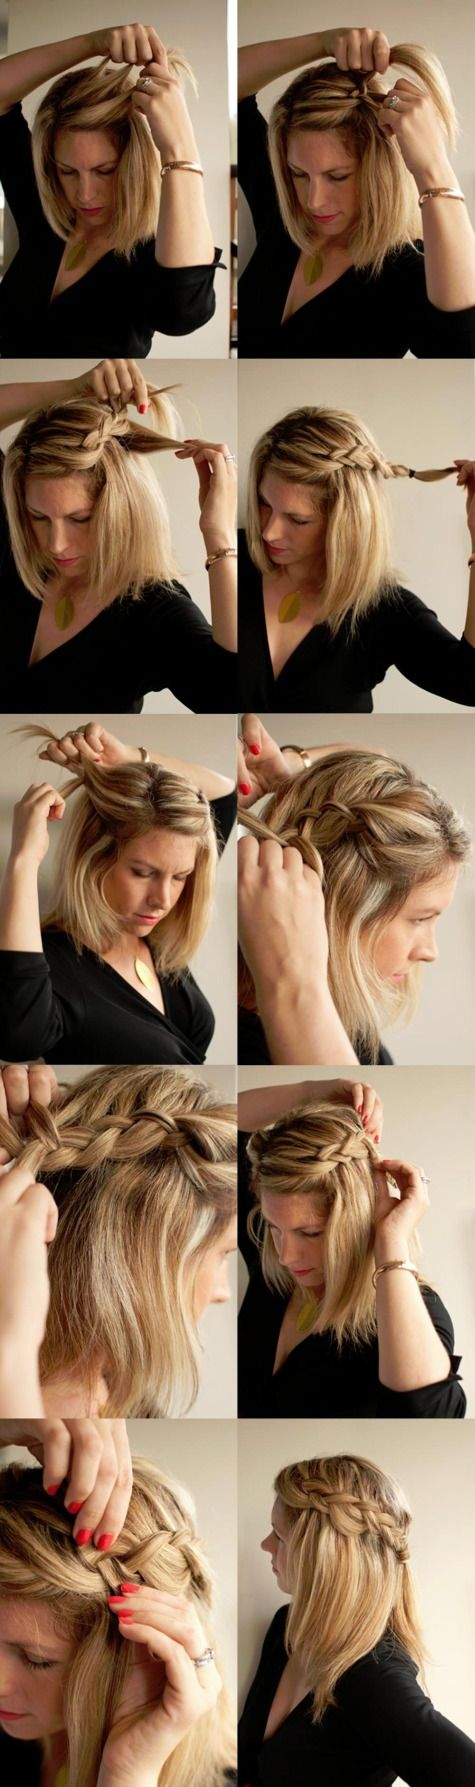 Plus De 1000 Ides Propos De All About HAIR Sur Pinterest